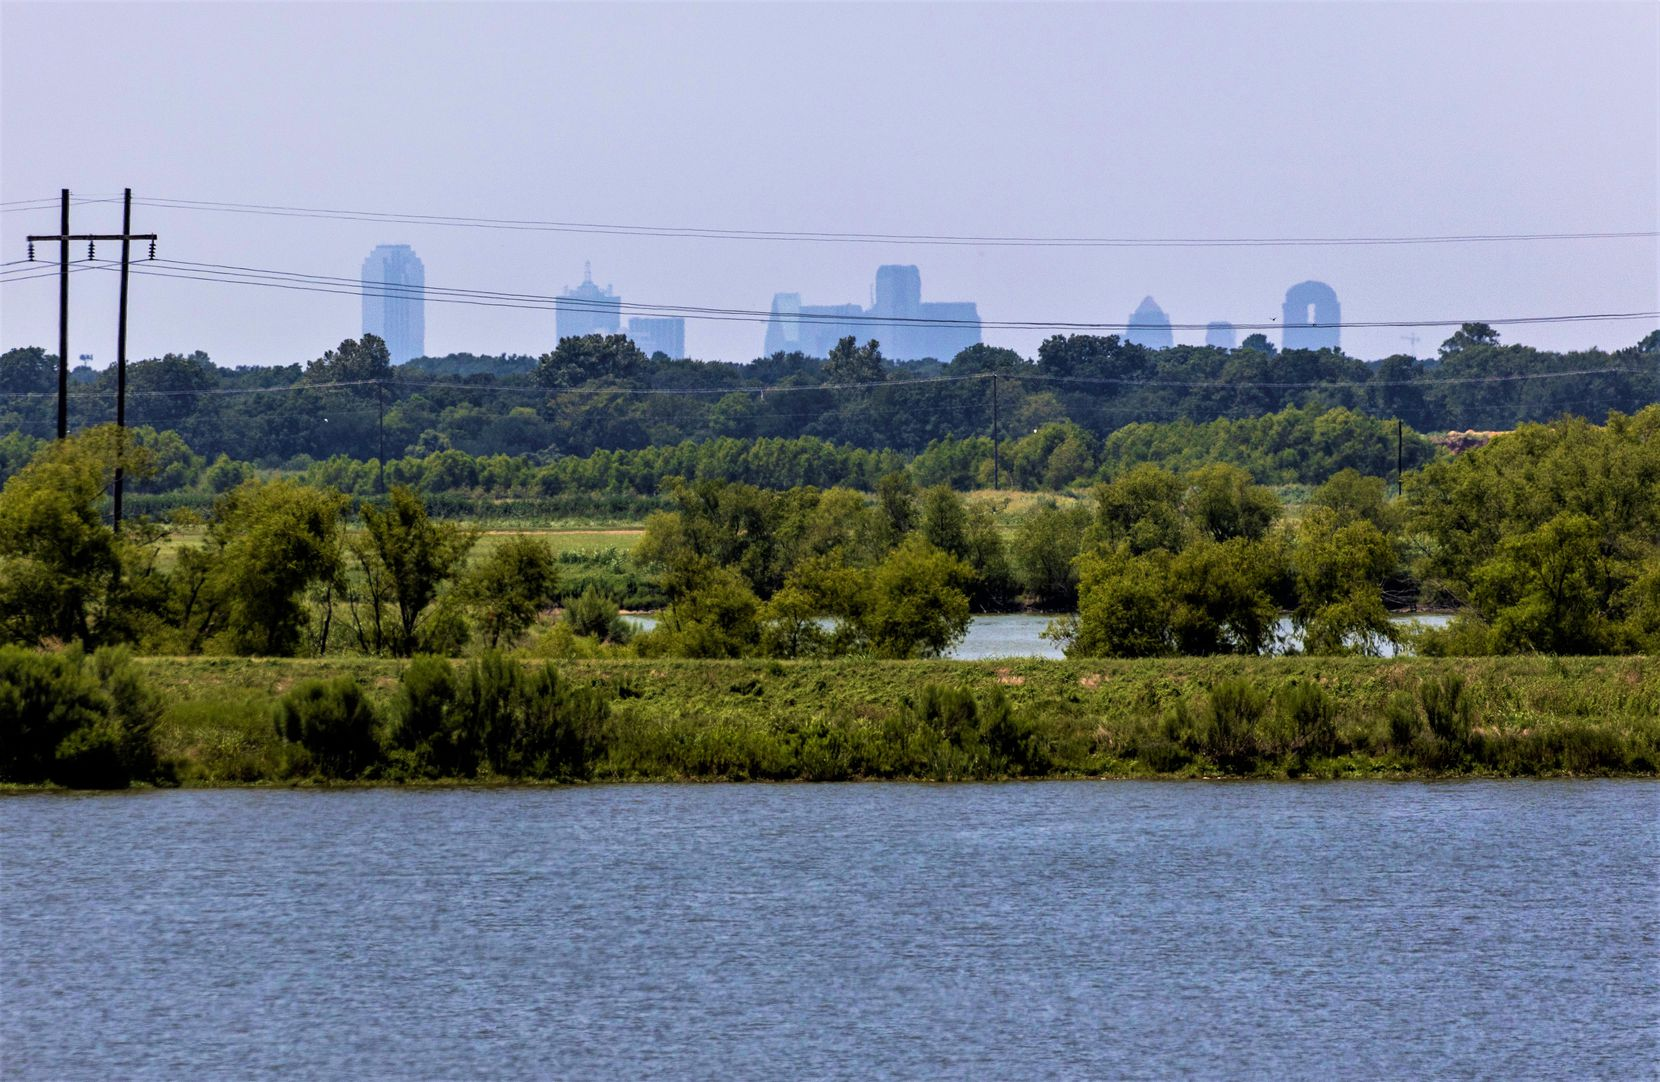 The Dallas skyline is seen form a levee at at the Dallas Southside Water Treatment facility near Sandbranch.